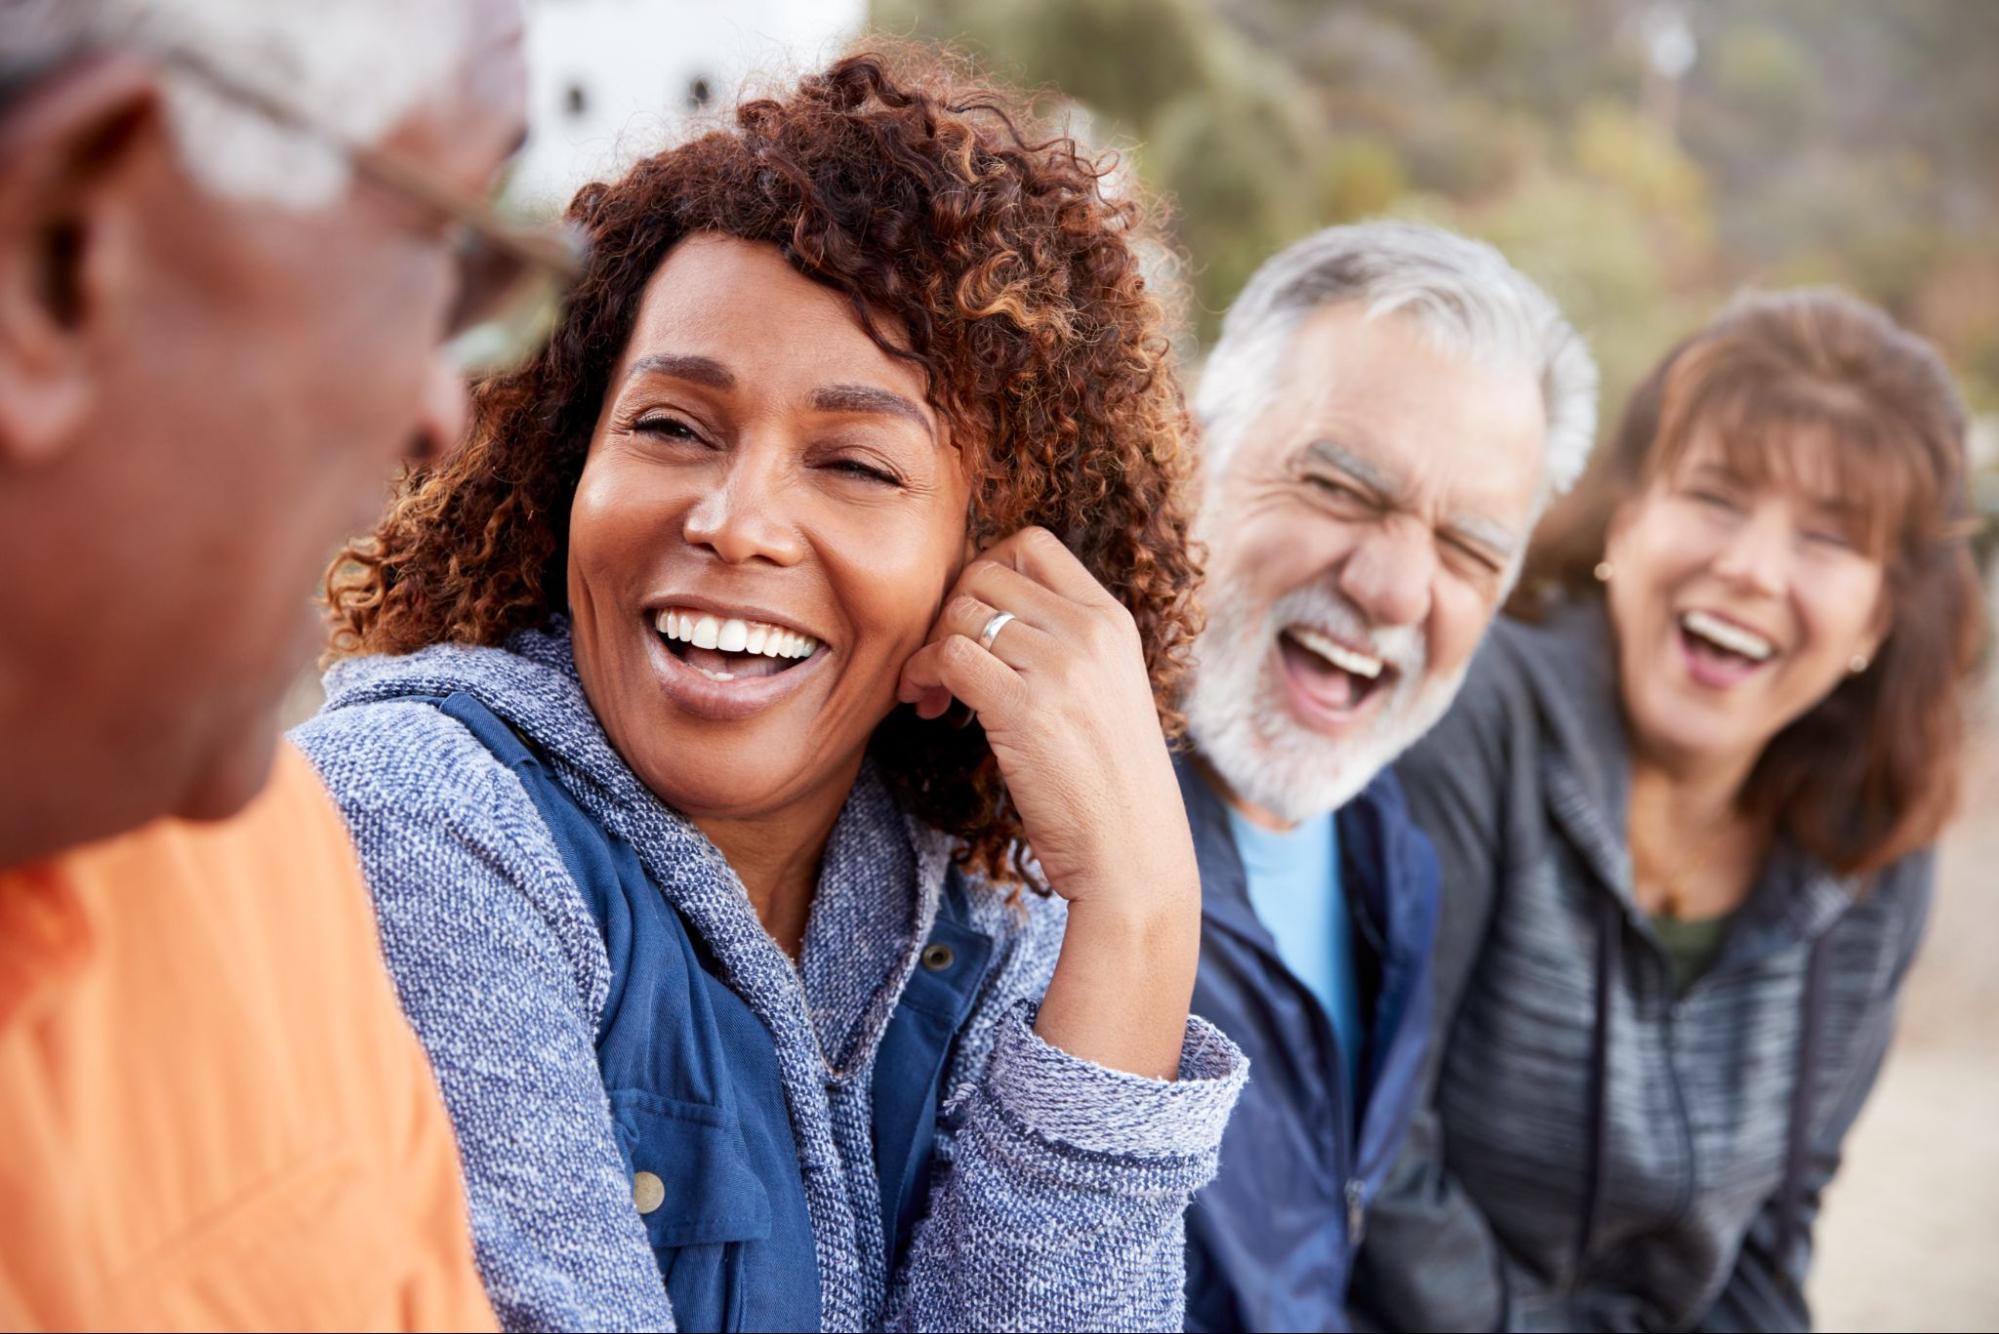 Receive gold standard dental treatment with next smile™ all-on-4® and dental implants